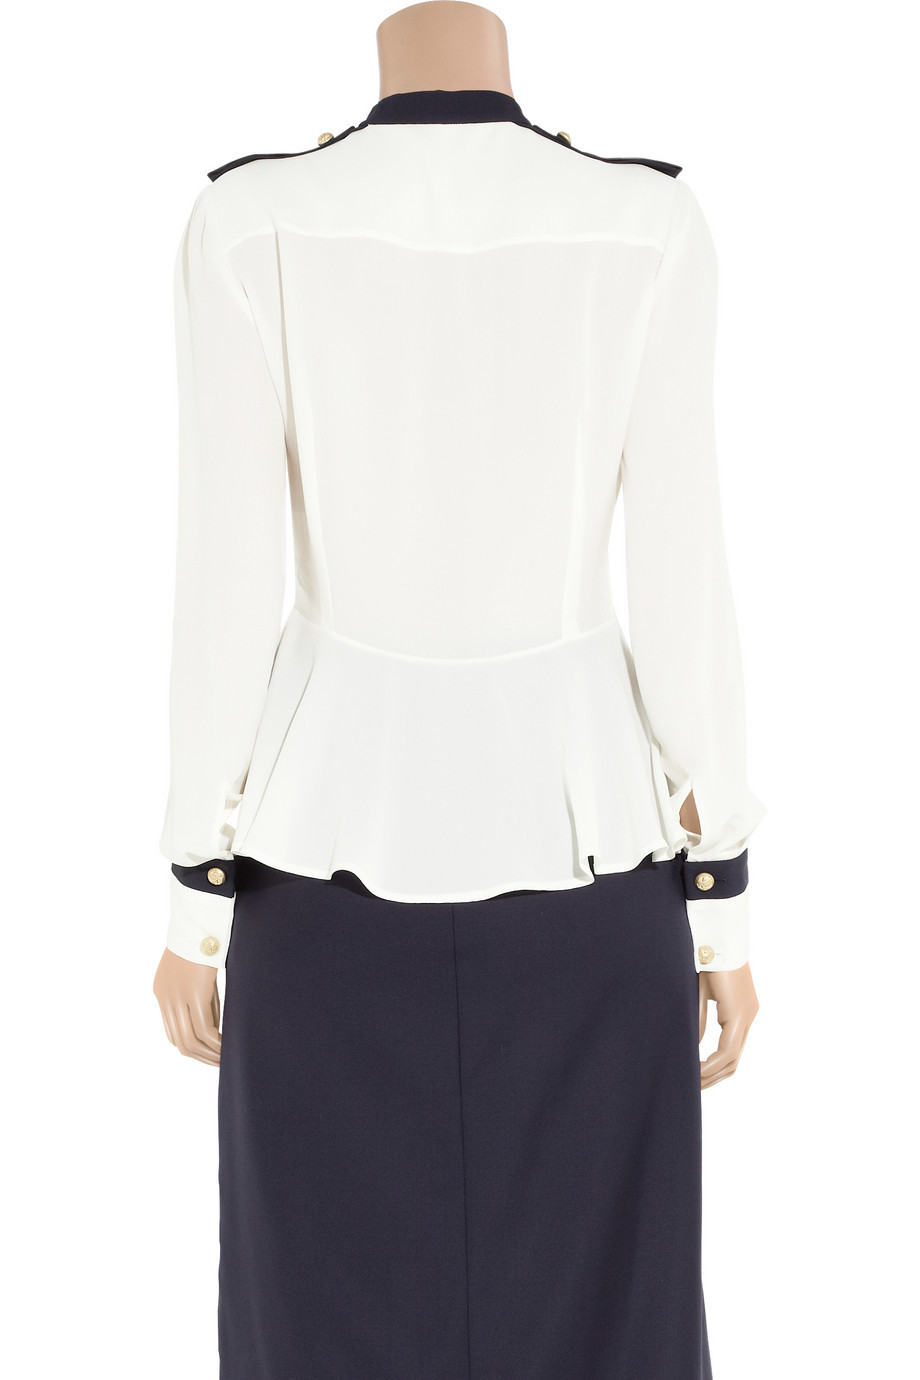 Alexander McQueen Silk-georgette Military Blouse in white and navy blue